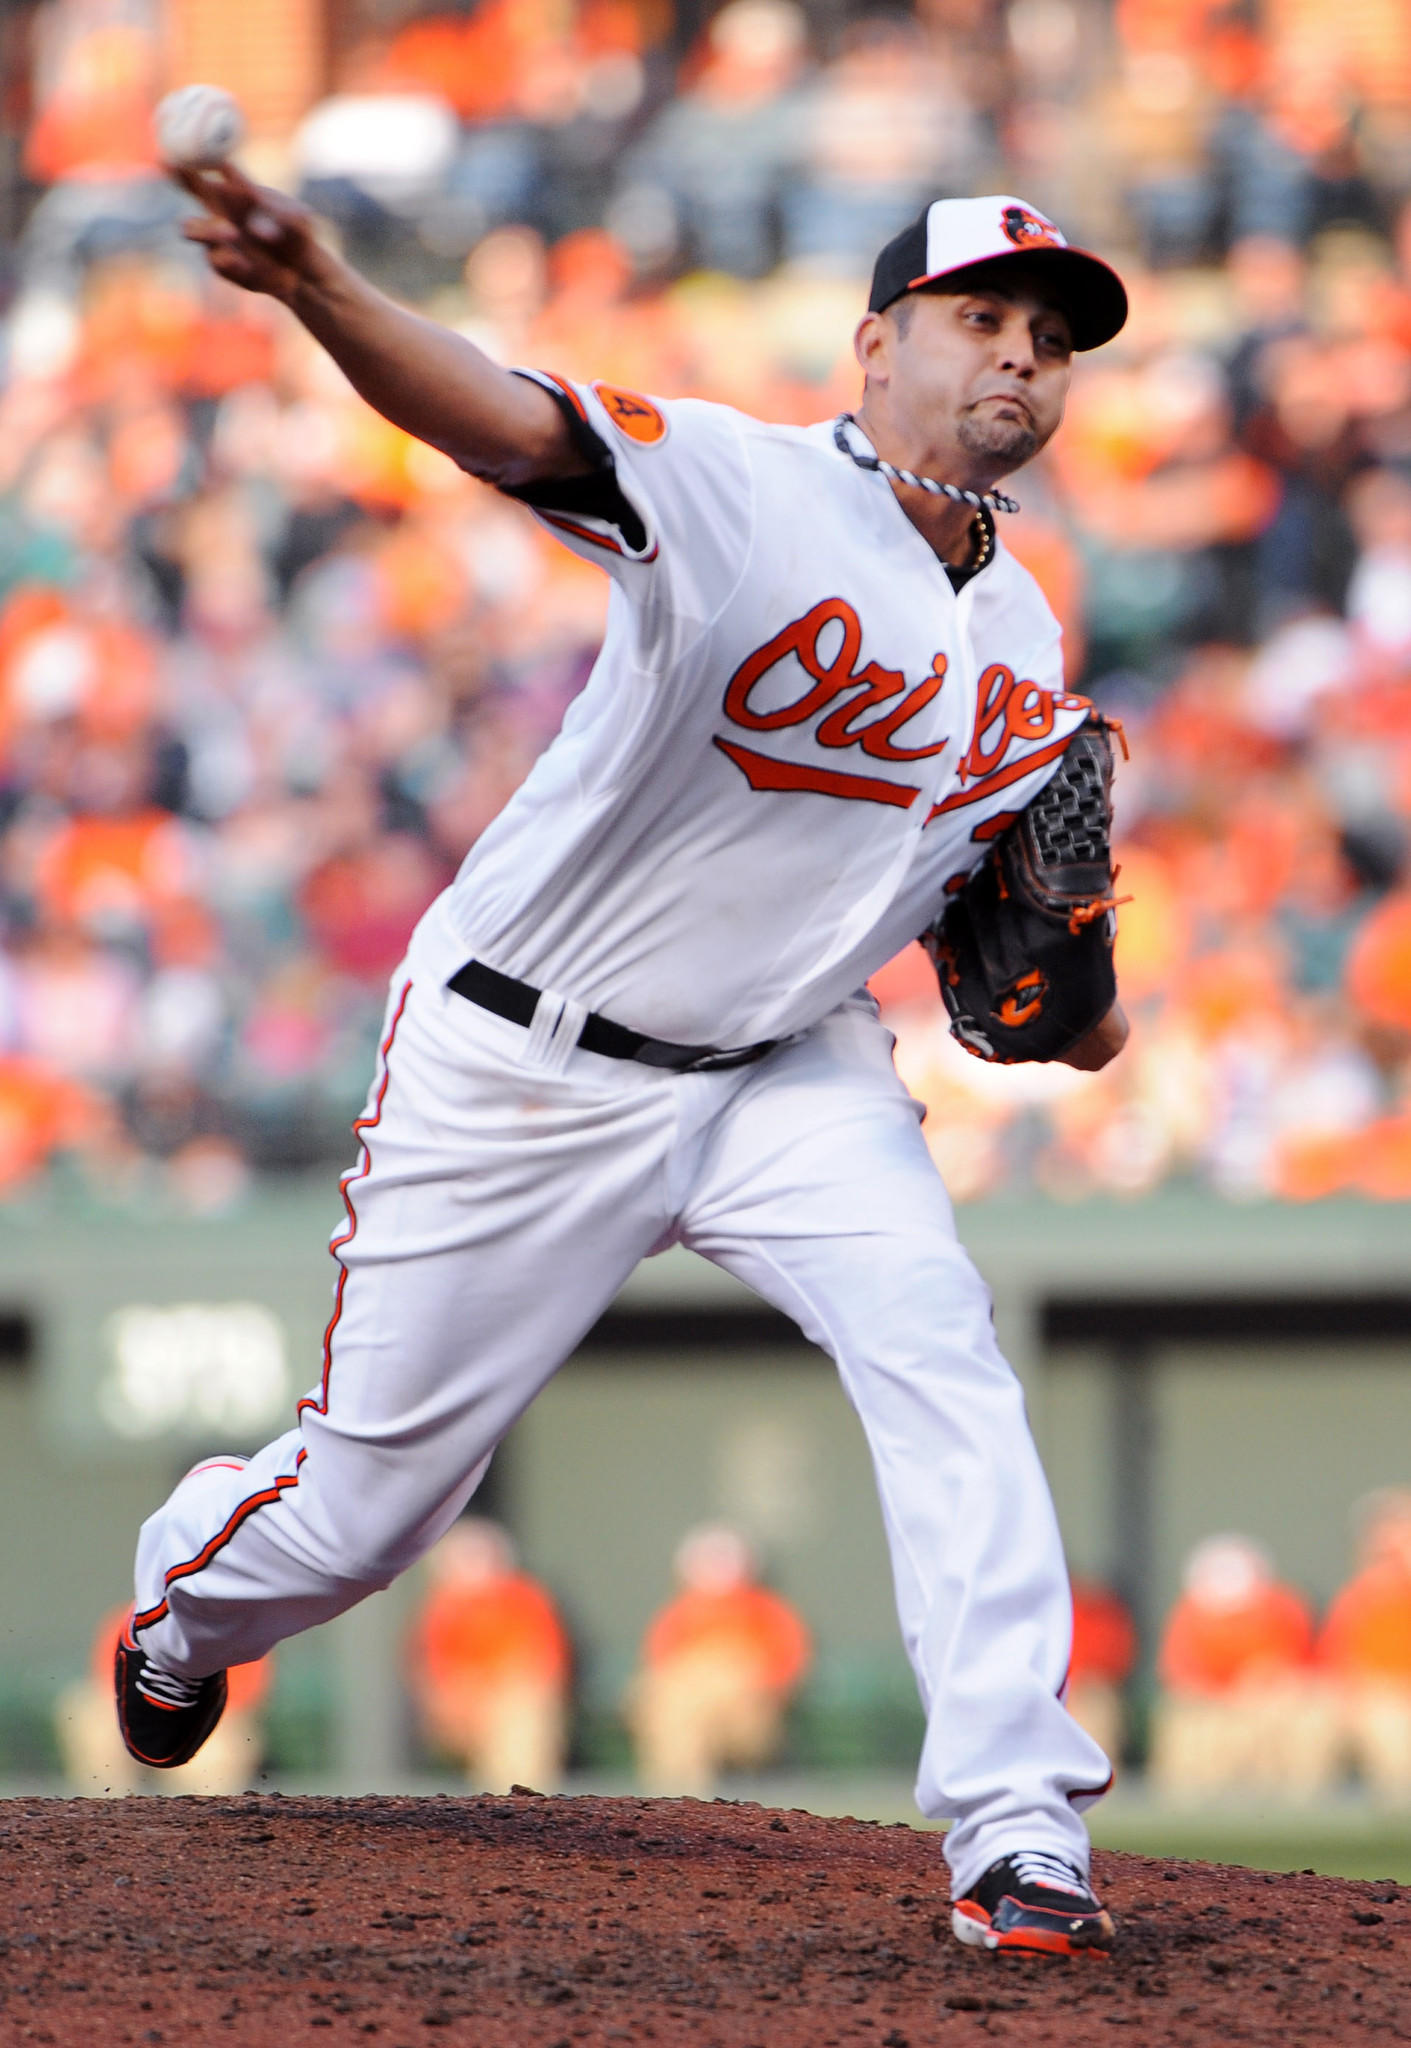 Baltimore, MD--4/5/13-- Orioles pitcher Luis Ayala pitched in the eighth inning against the Twins. Ayala is the winning pitcher as the Orioles defeated the Twins by score of 9 to 5 on their home opener at Oriole Park at Camden Yards. Photo by: Kenneth K. Lam/Baltimore Sun DSC